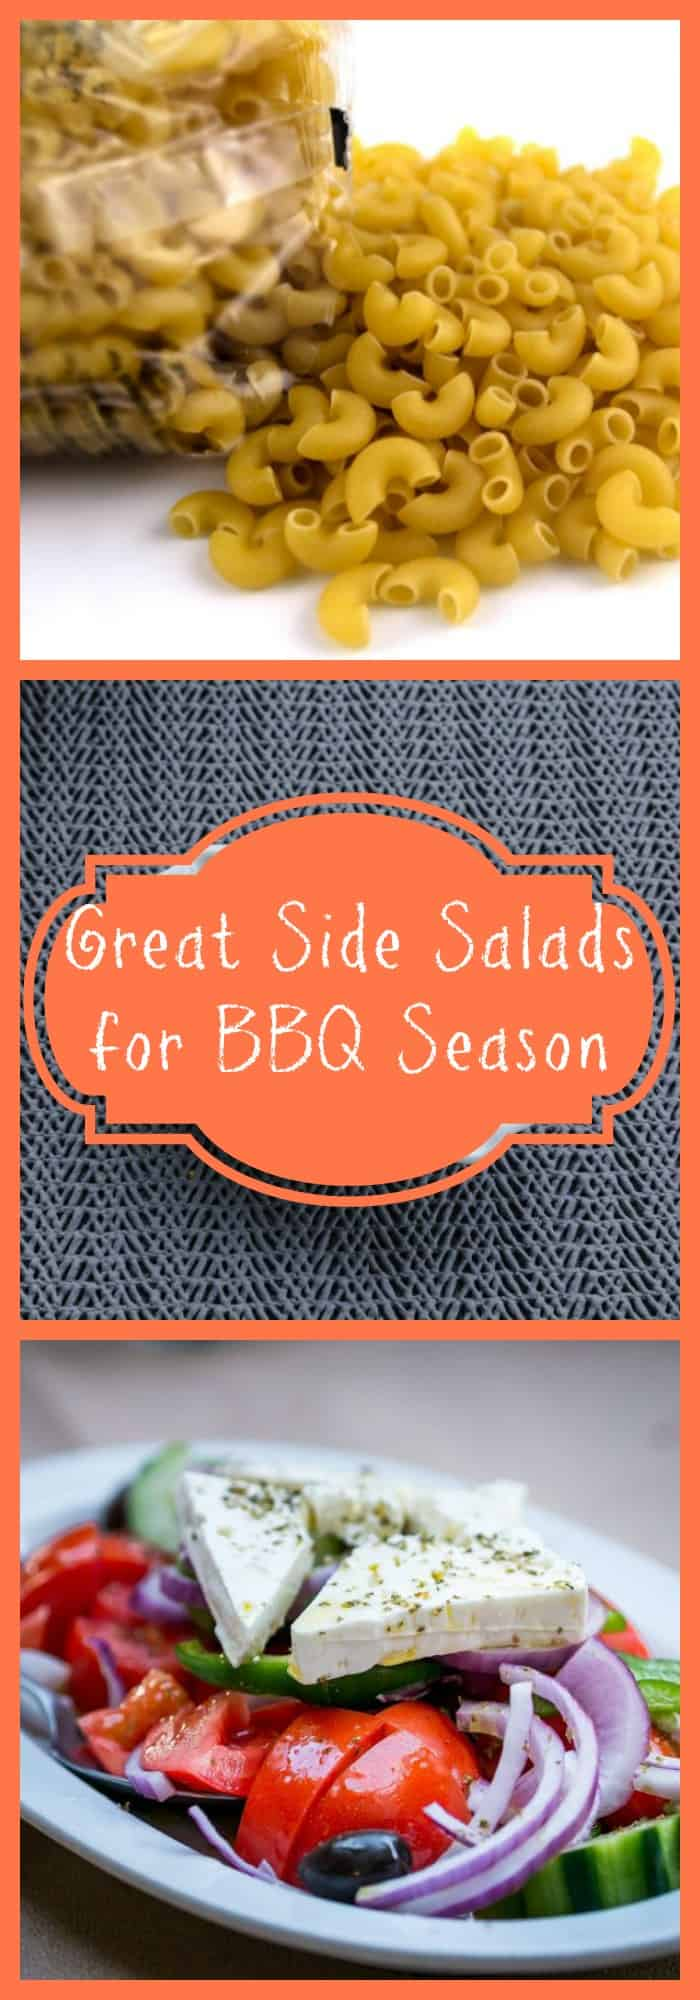 Great Side Salads for BBQ Season